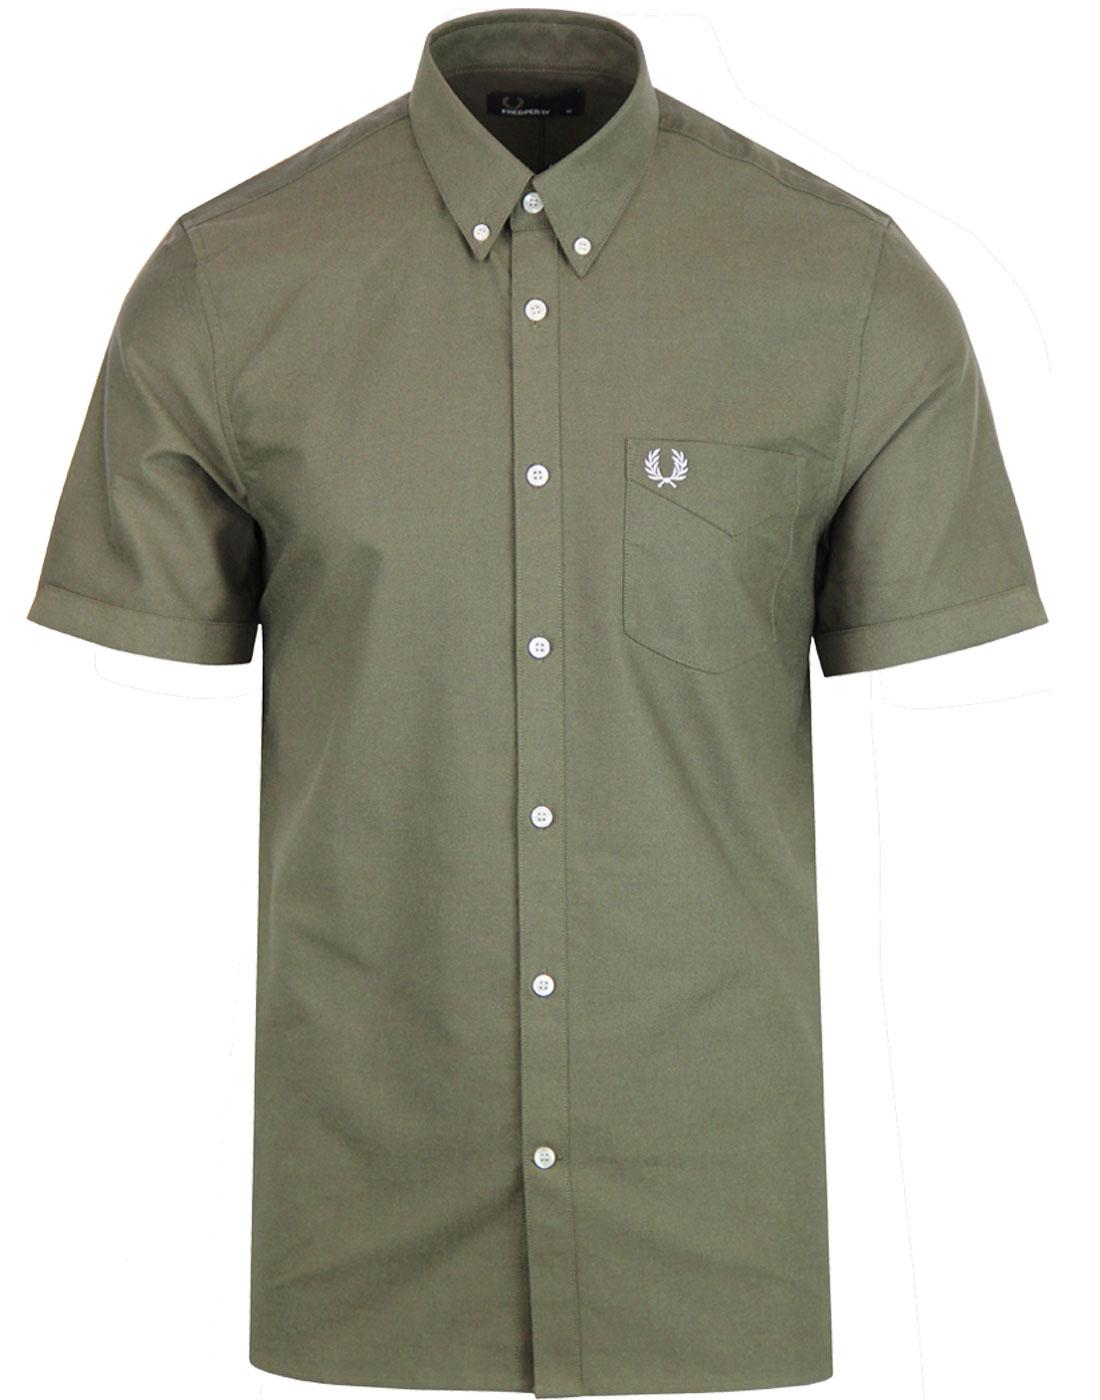 M3531 FRED PERRY OXFORD SHIRT NETTLE